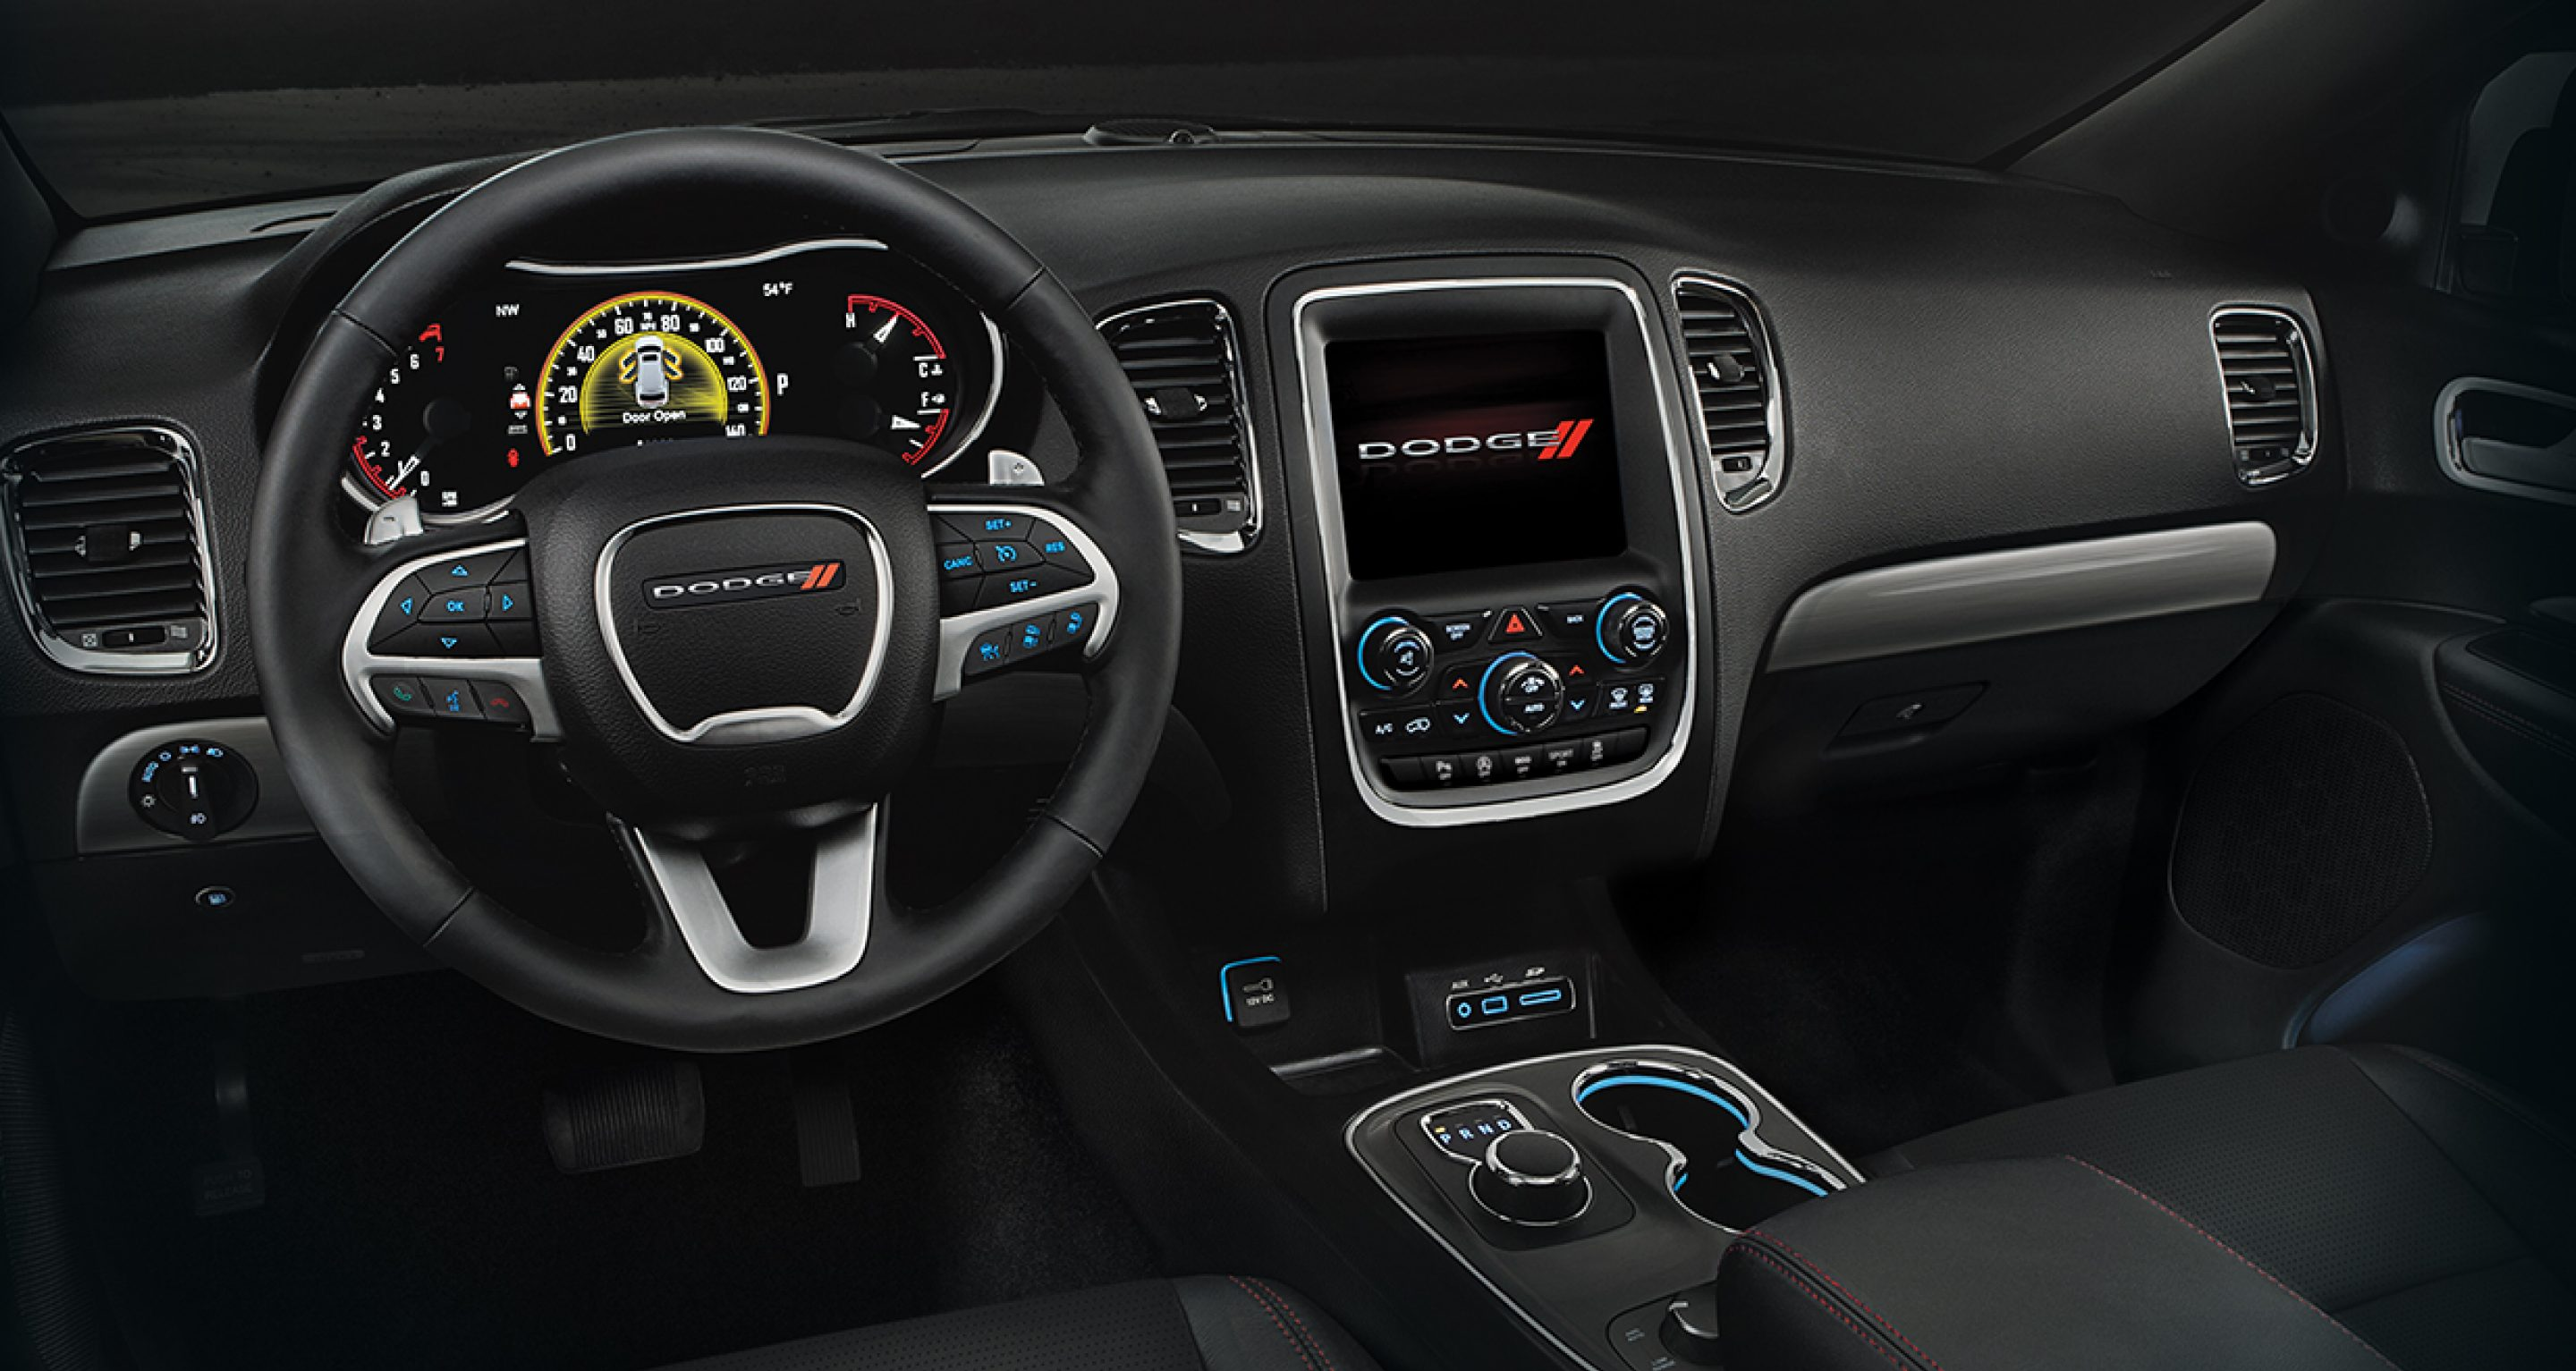 2017 Dodge Durango interior and dashboard